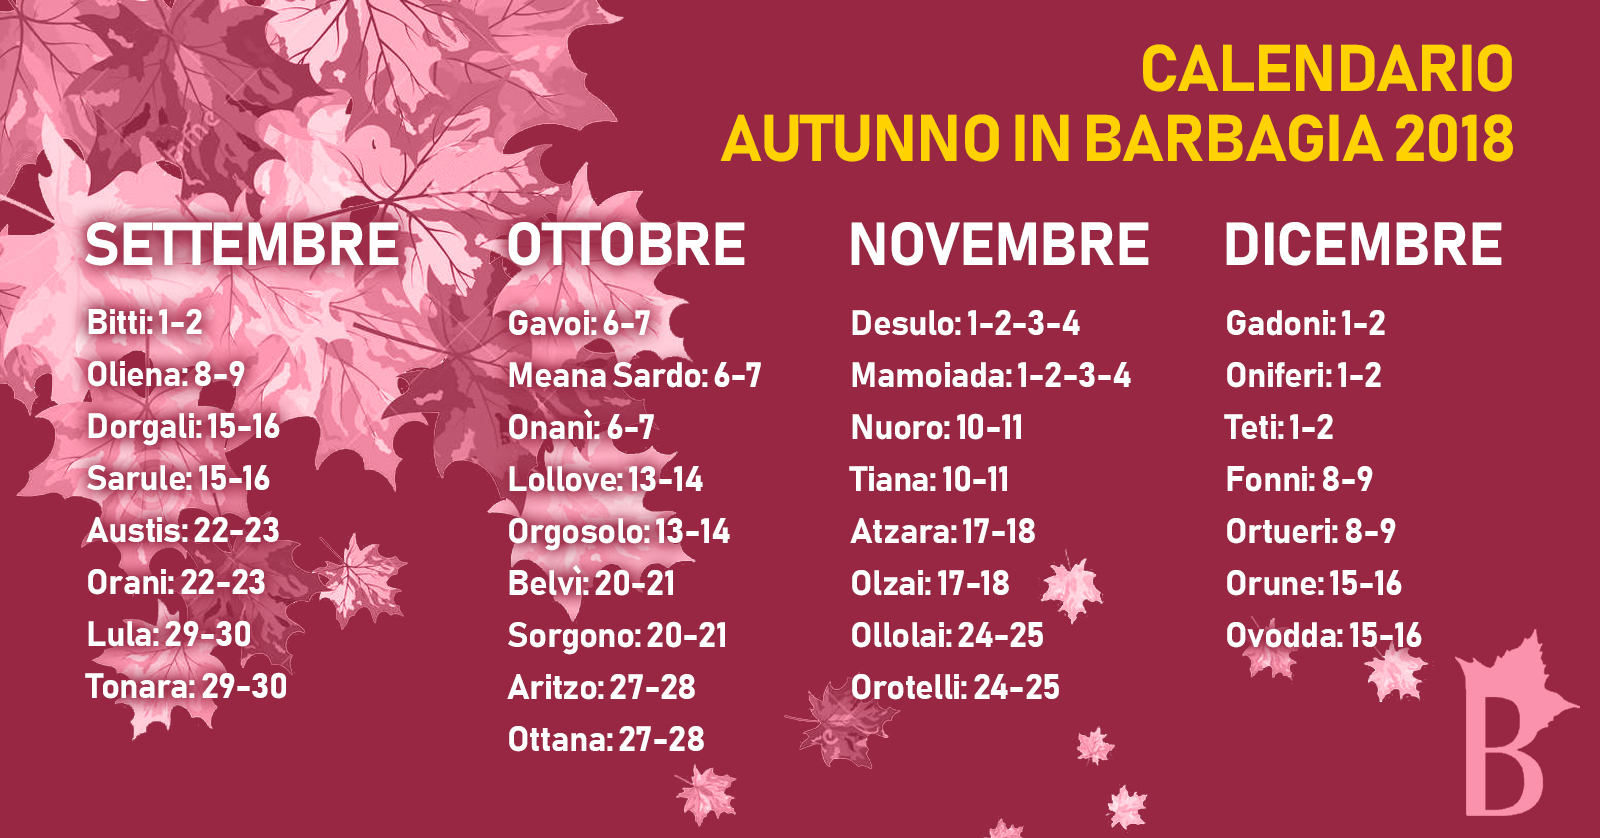 Calendario autunno in barbagia 2018